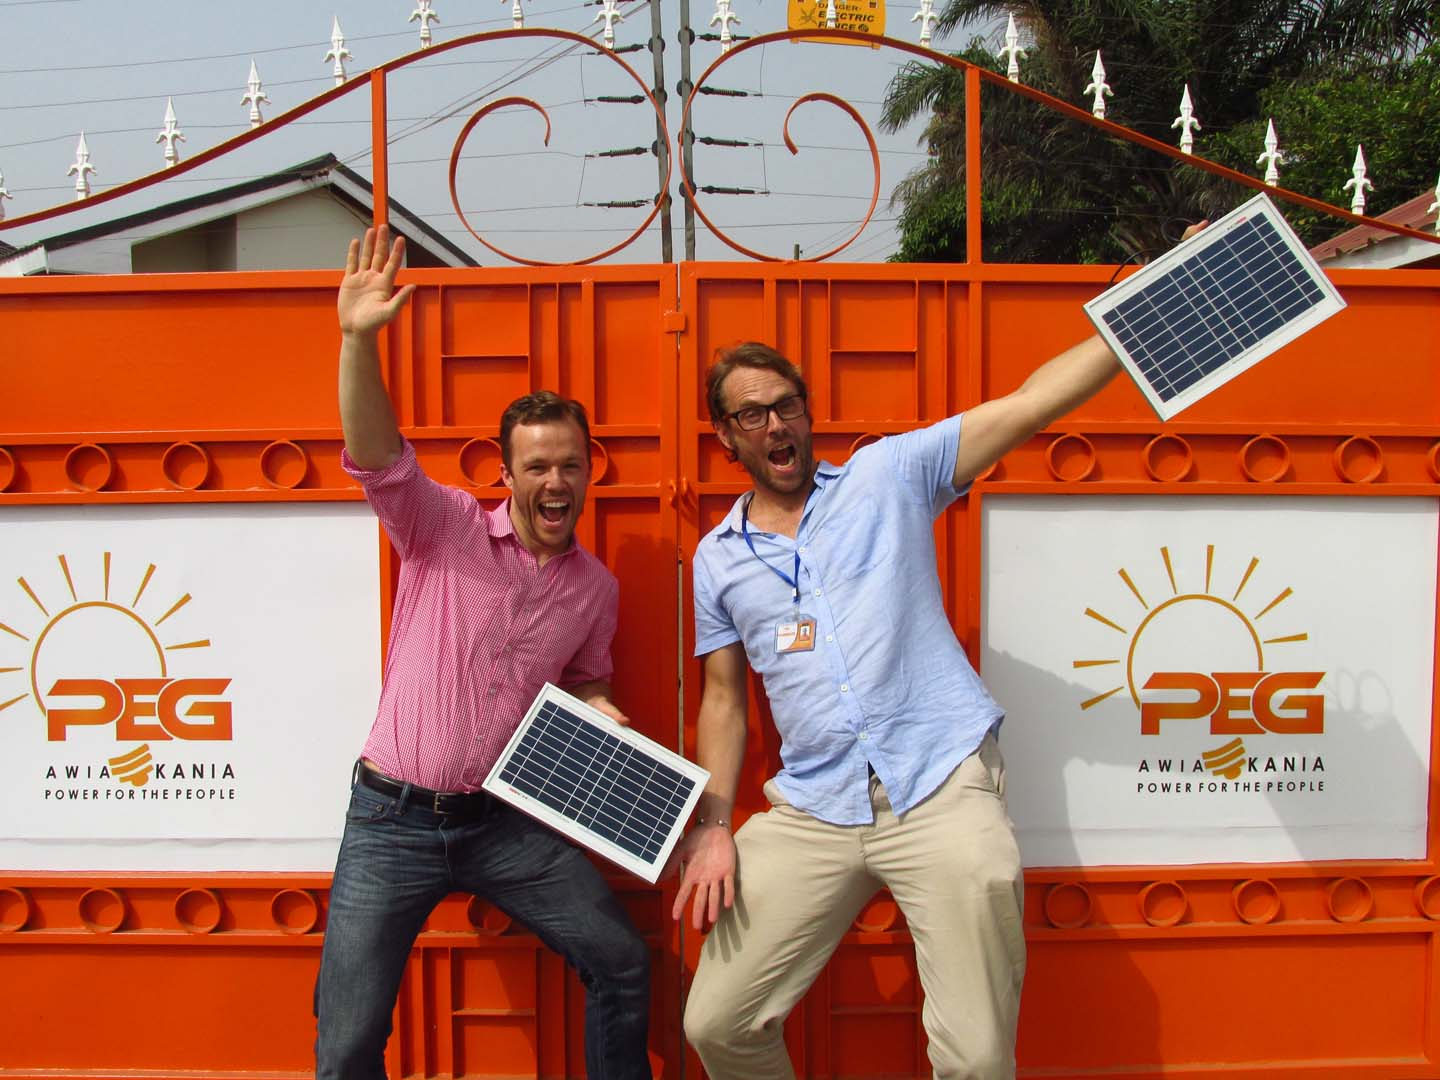 PEG Africa co-founders Hugh Whalan (left) and Nate Heller (right). Source: PEG Africa